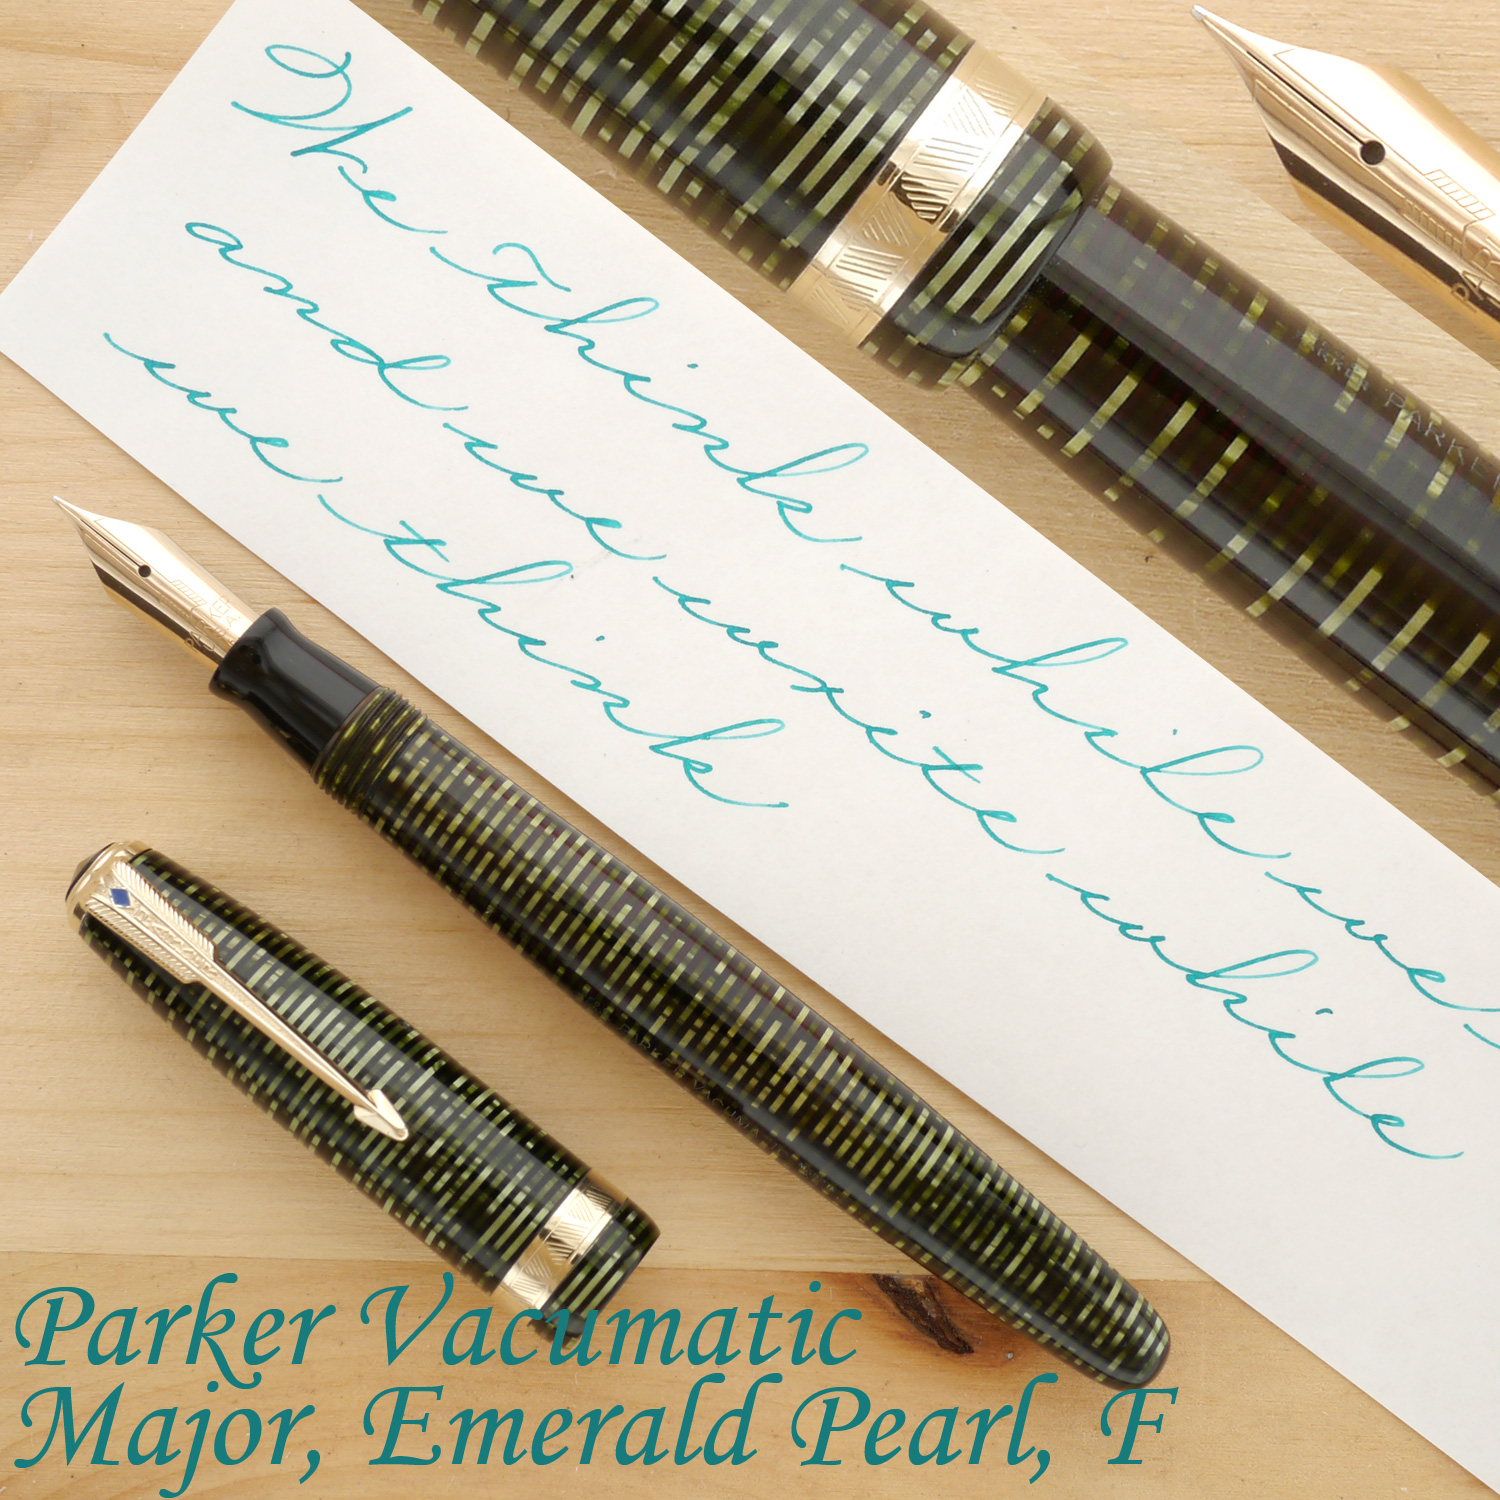 Parker Vacumatic Major Fountain Pen, Emerald Pearl, F, uncapped